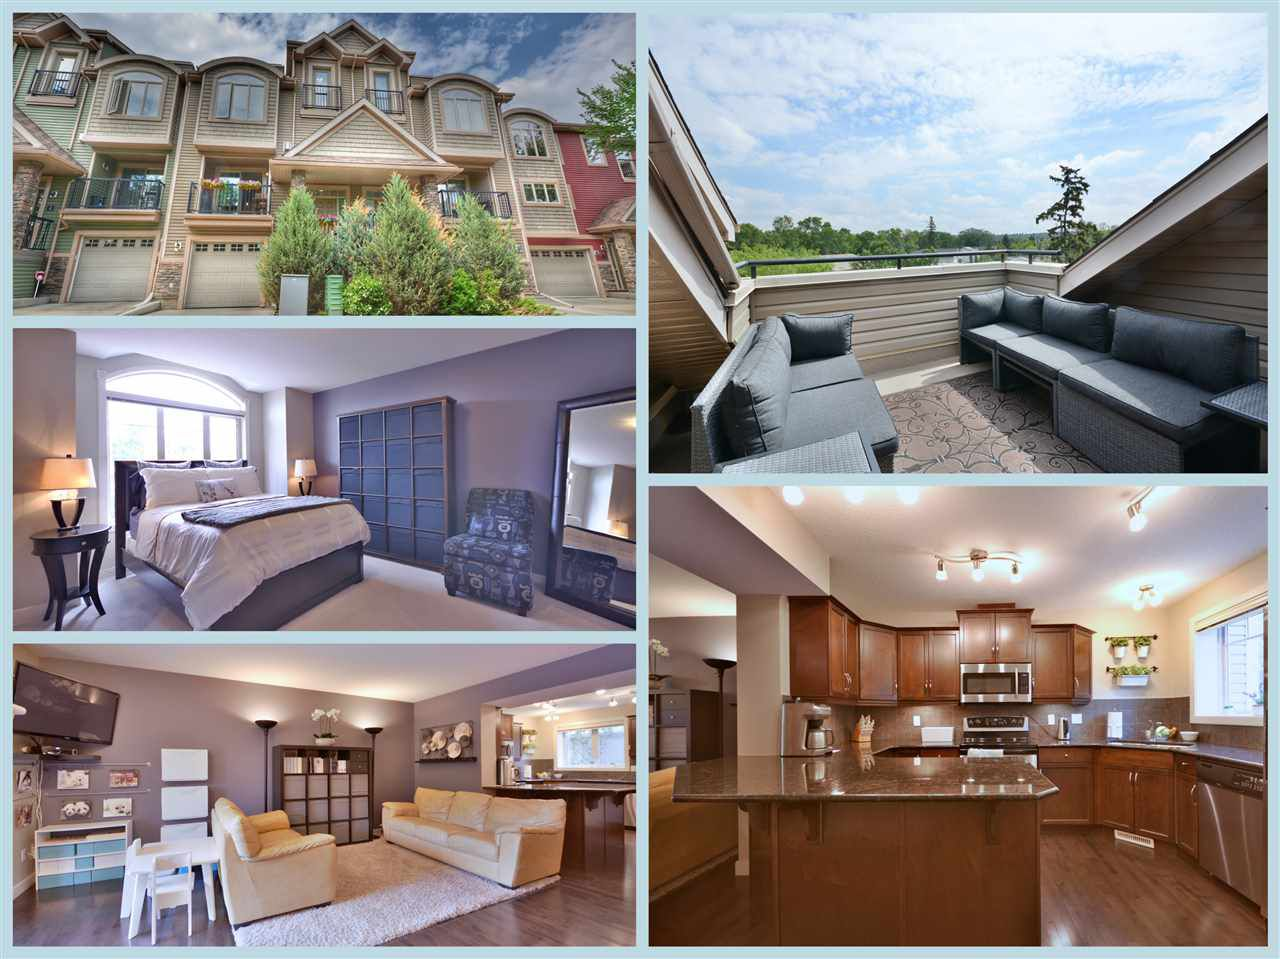 Main Photo: 5 10240 90 Street in Edmonton: Zone 13 Townhouse for sale : MLS®# E4133357